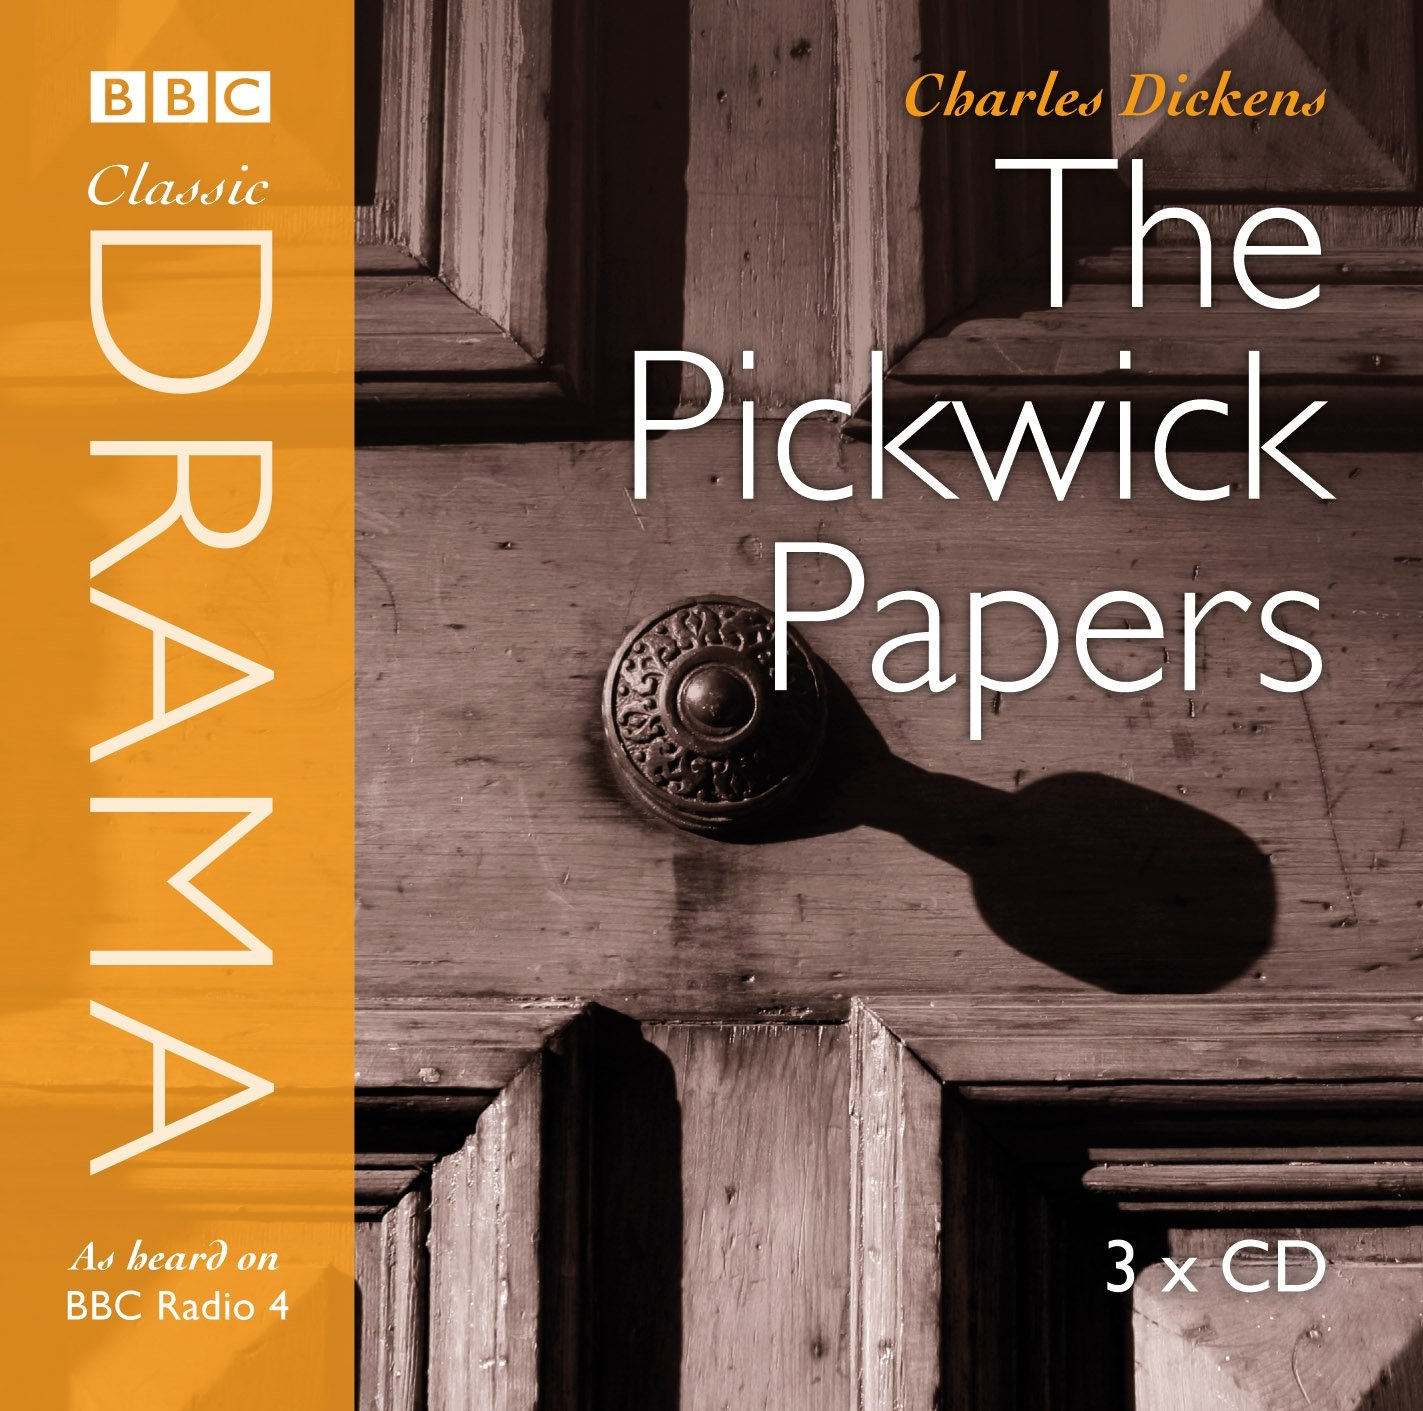 Pdf pickwick papers